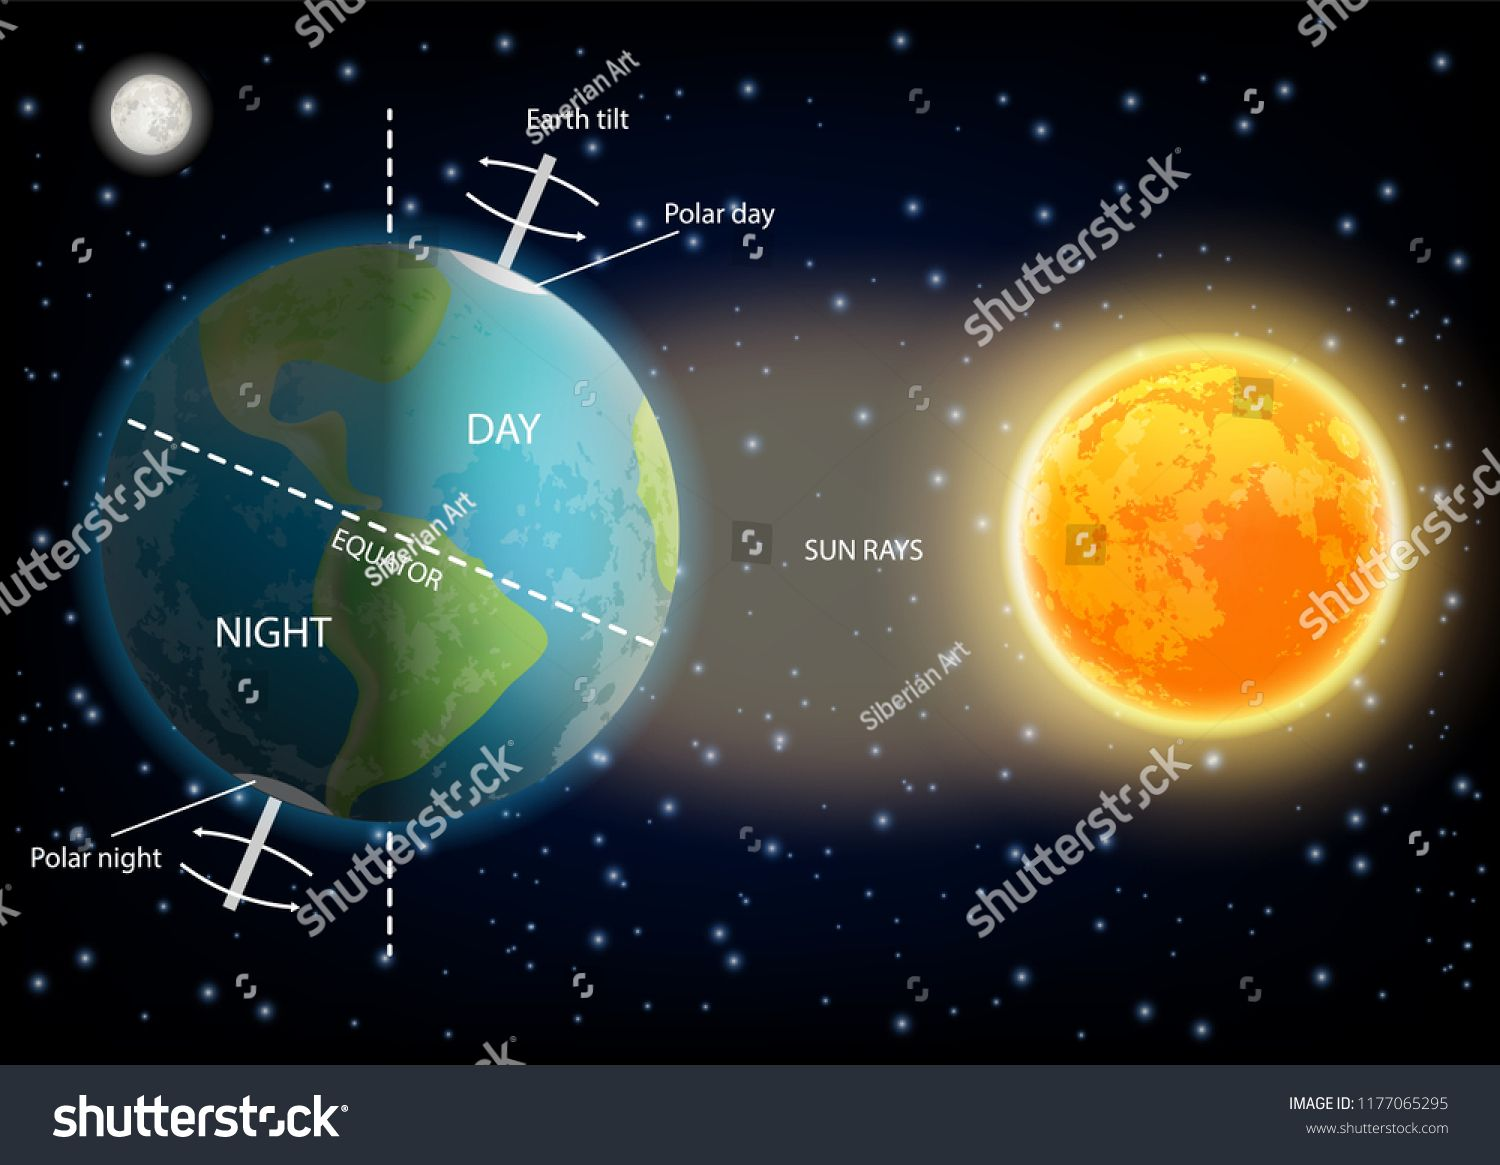 24 Hours Day And Night Cycle Diagram Vector Illustration